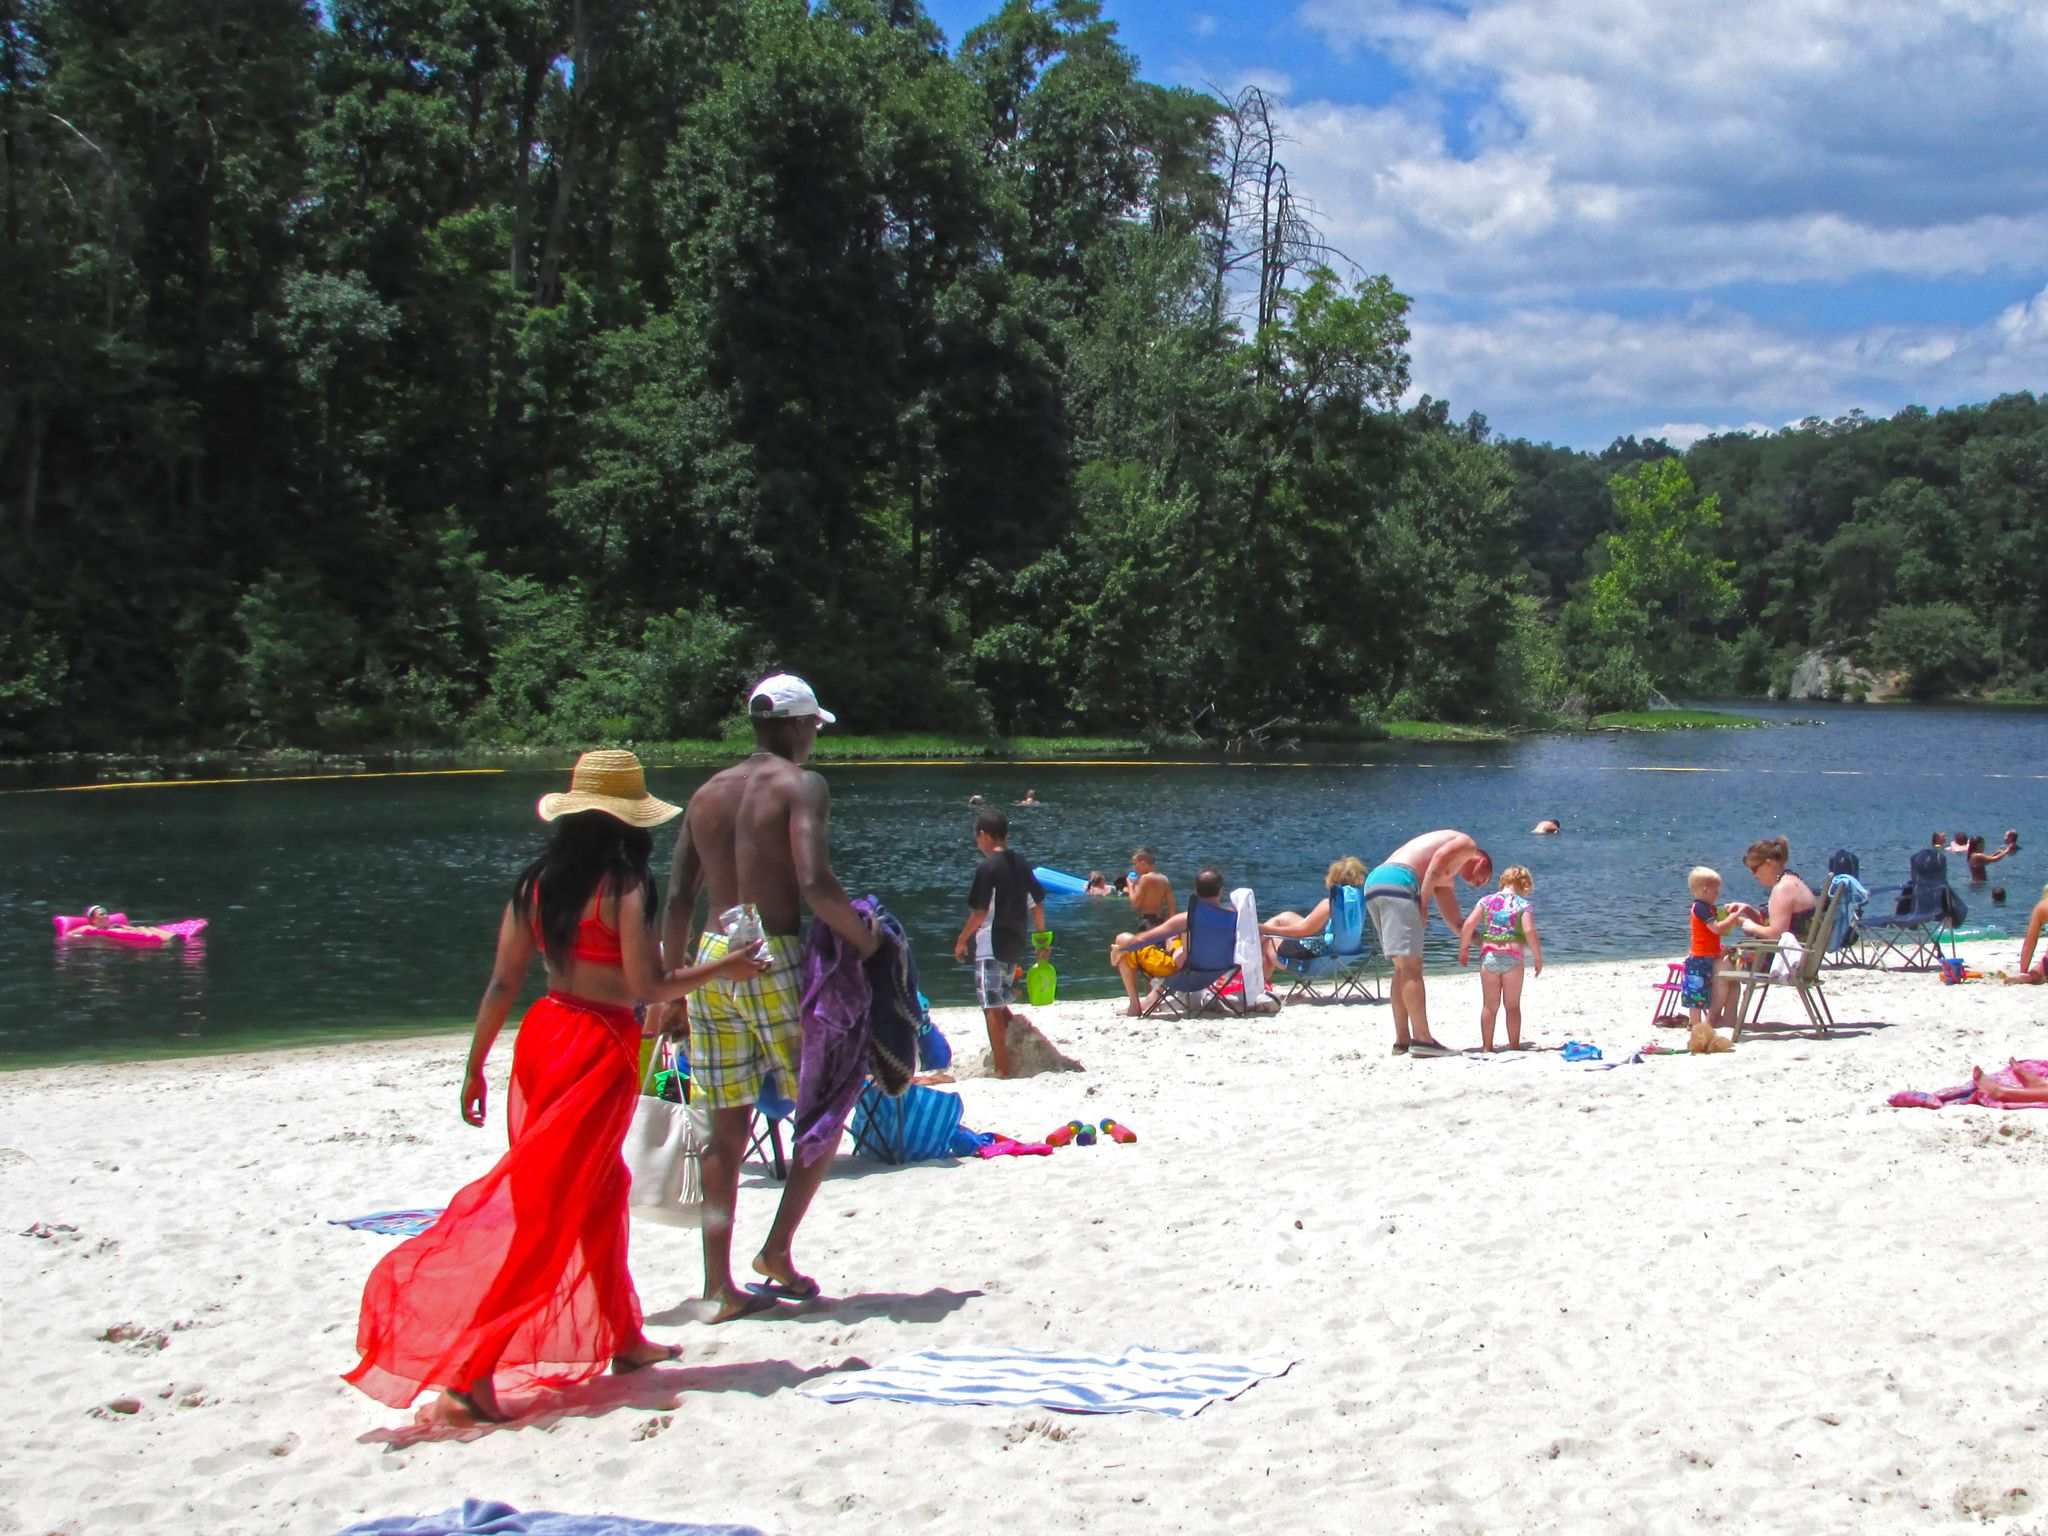 While Kentucky Might Not Be Thought Of As A Beach Destination Several Kentucky State Parks Have Beaches Set In Lake Locat Beach Road Trip Kentucky Travel Trip